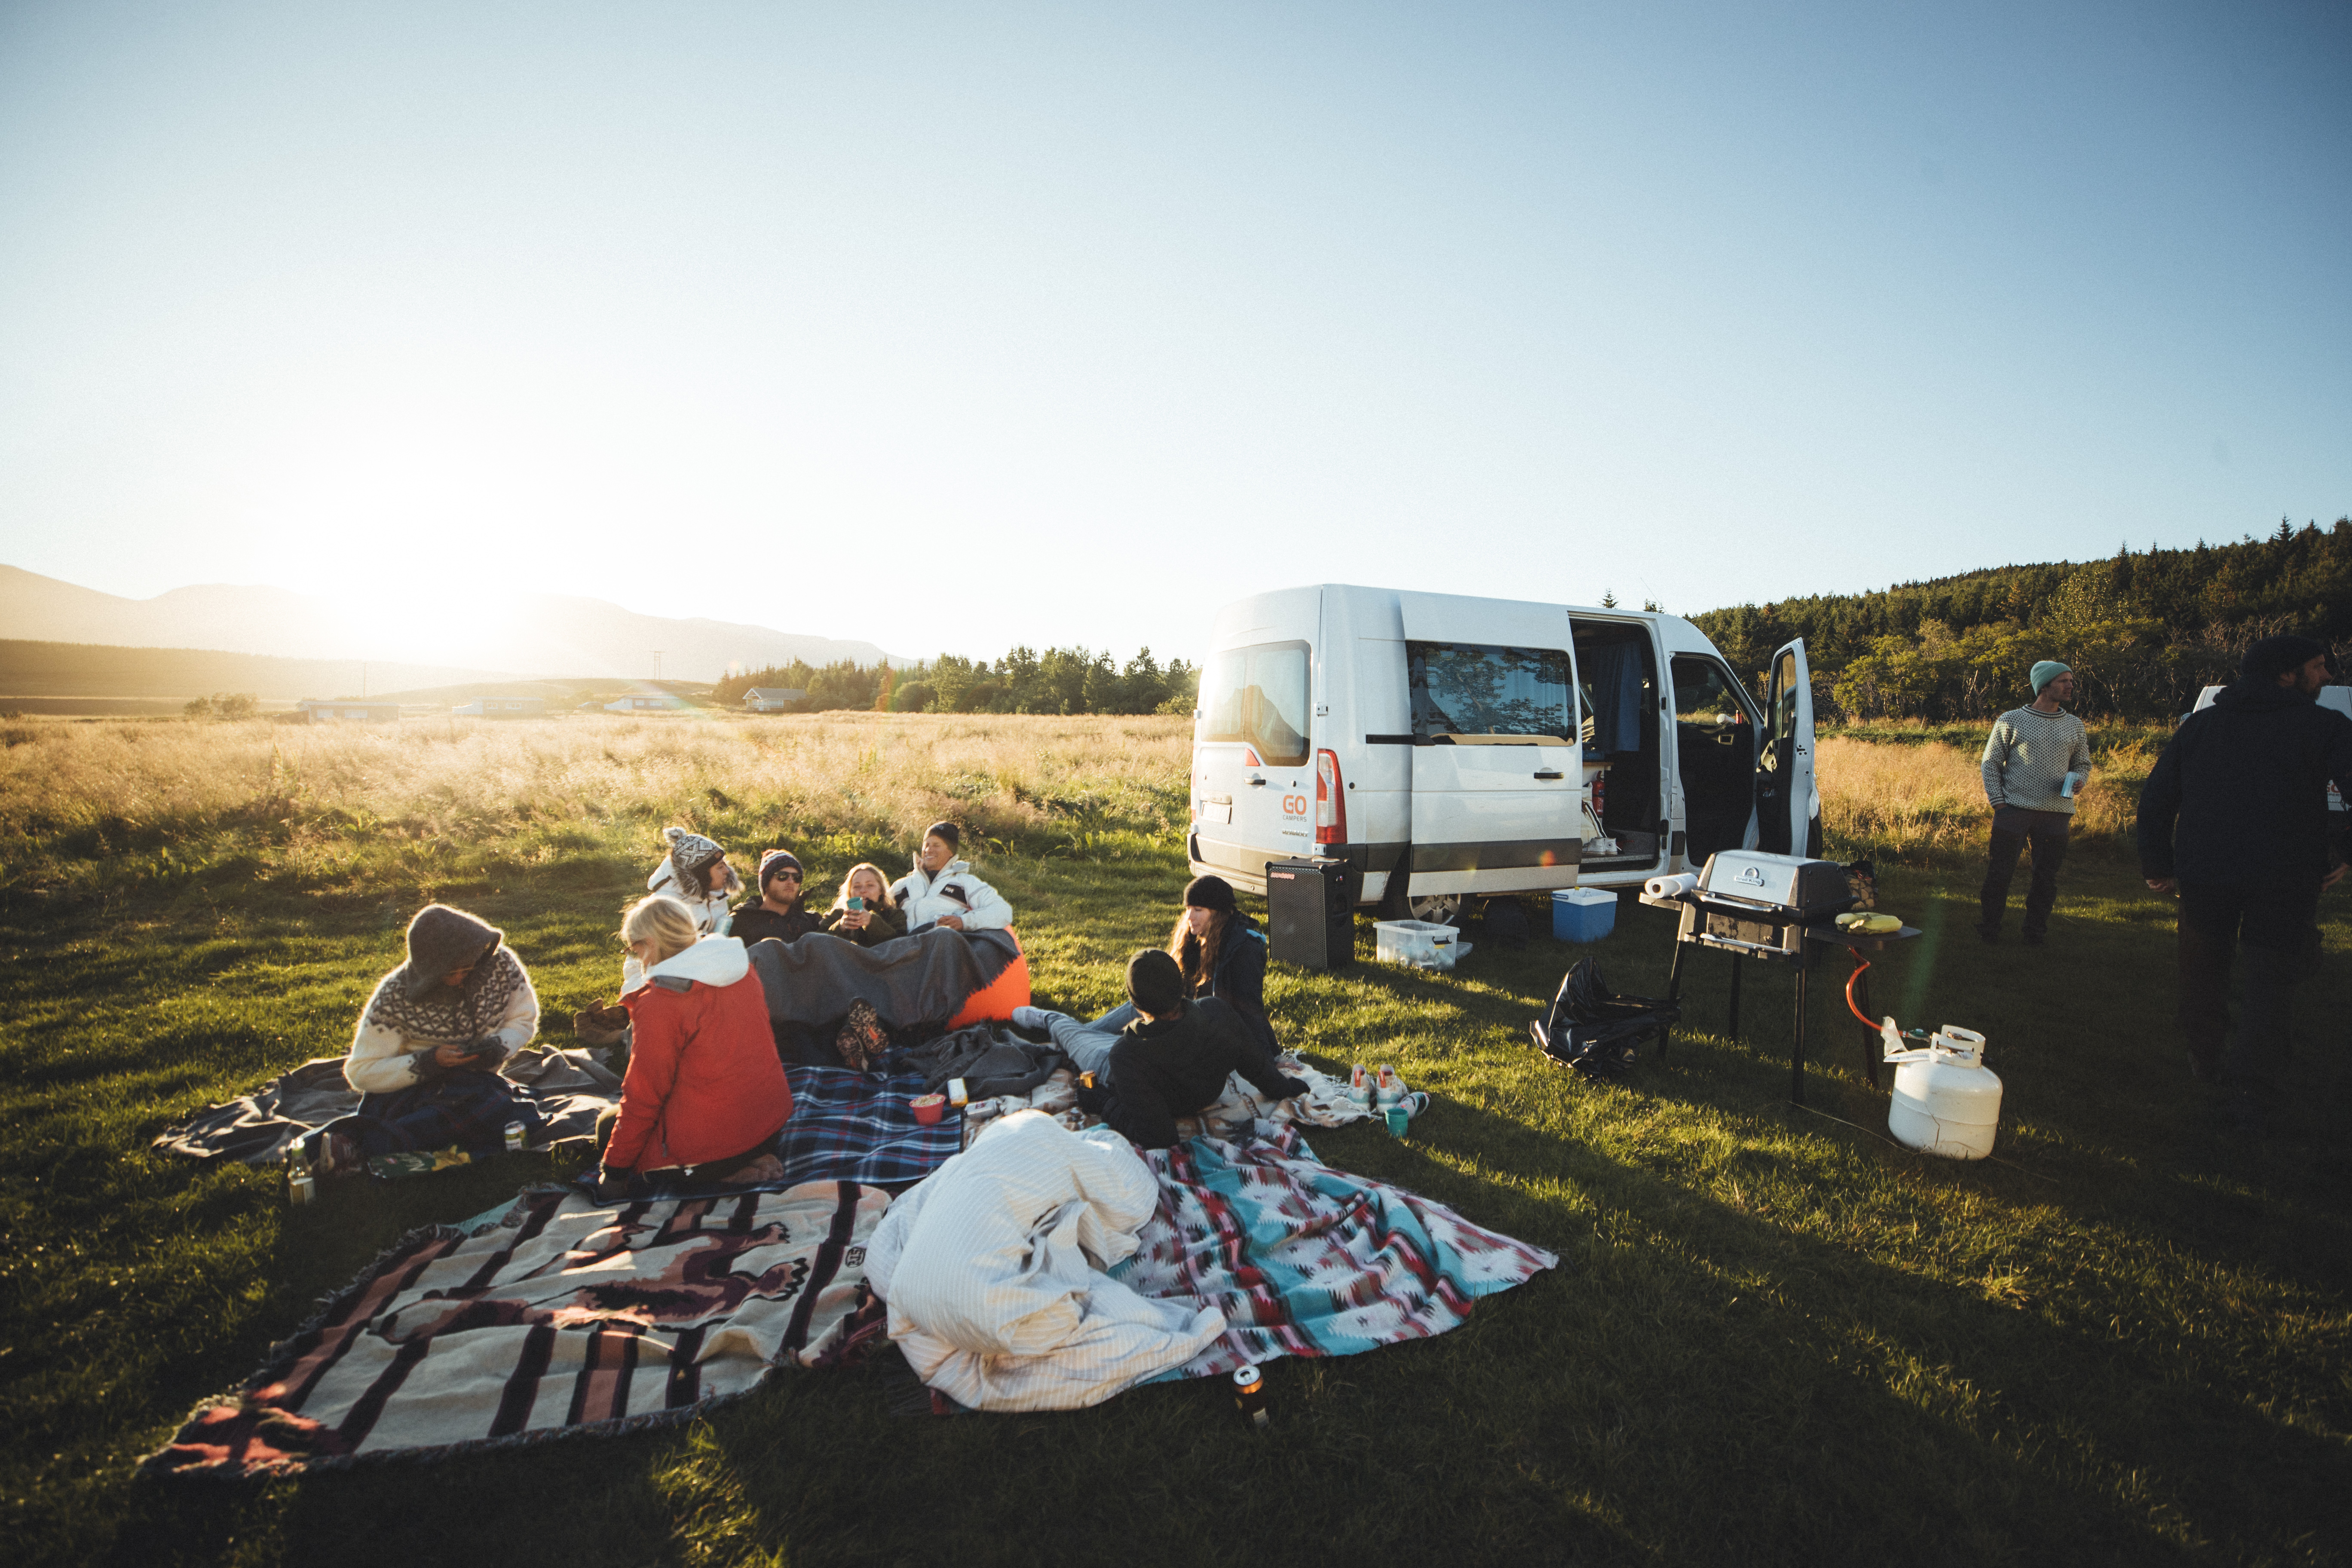 people having a picnic in front of a white sprinter van with a soundboks listening to music